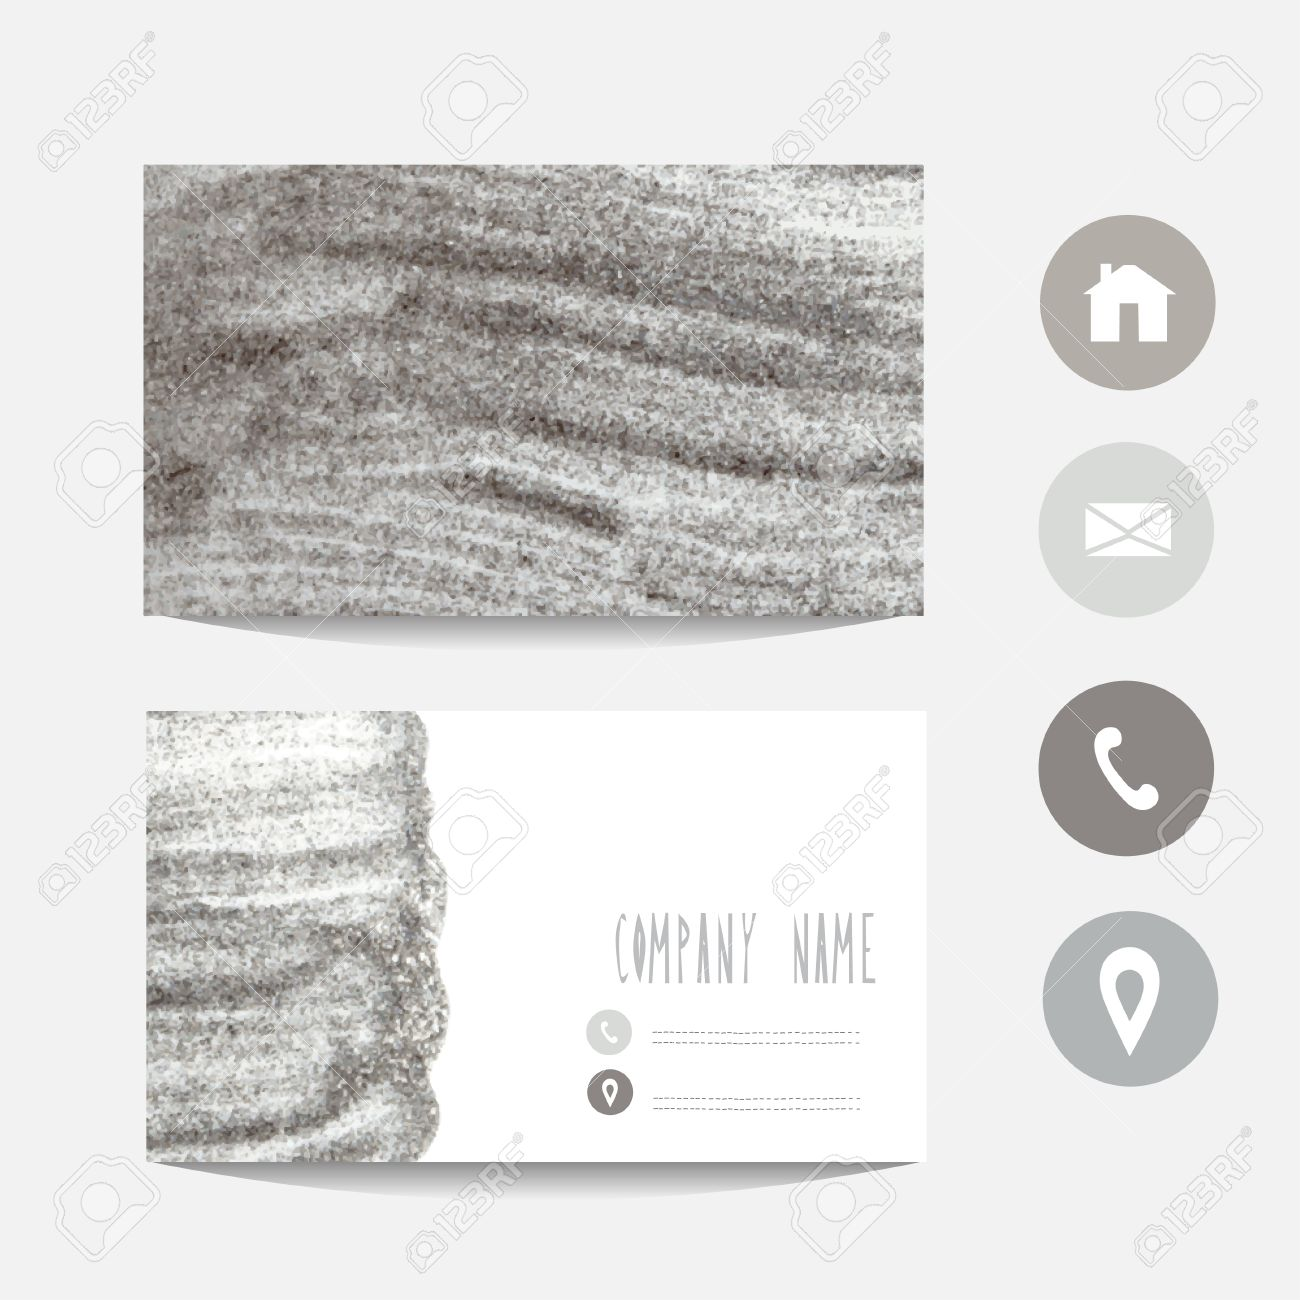 Silver Glitter Business Card Template, Design Element. Can Be ...